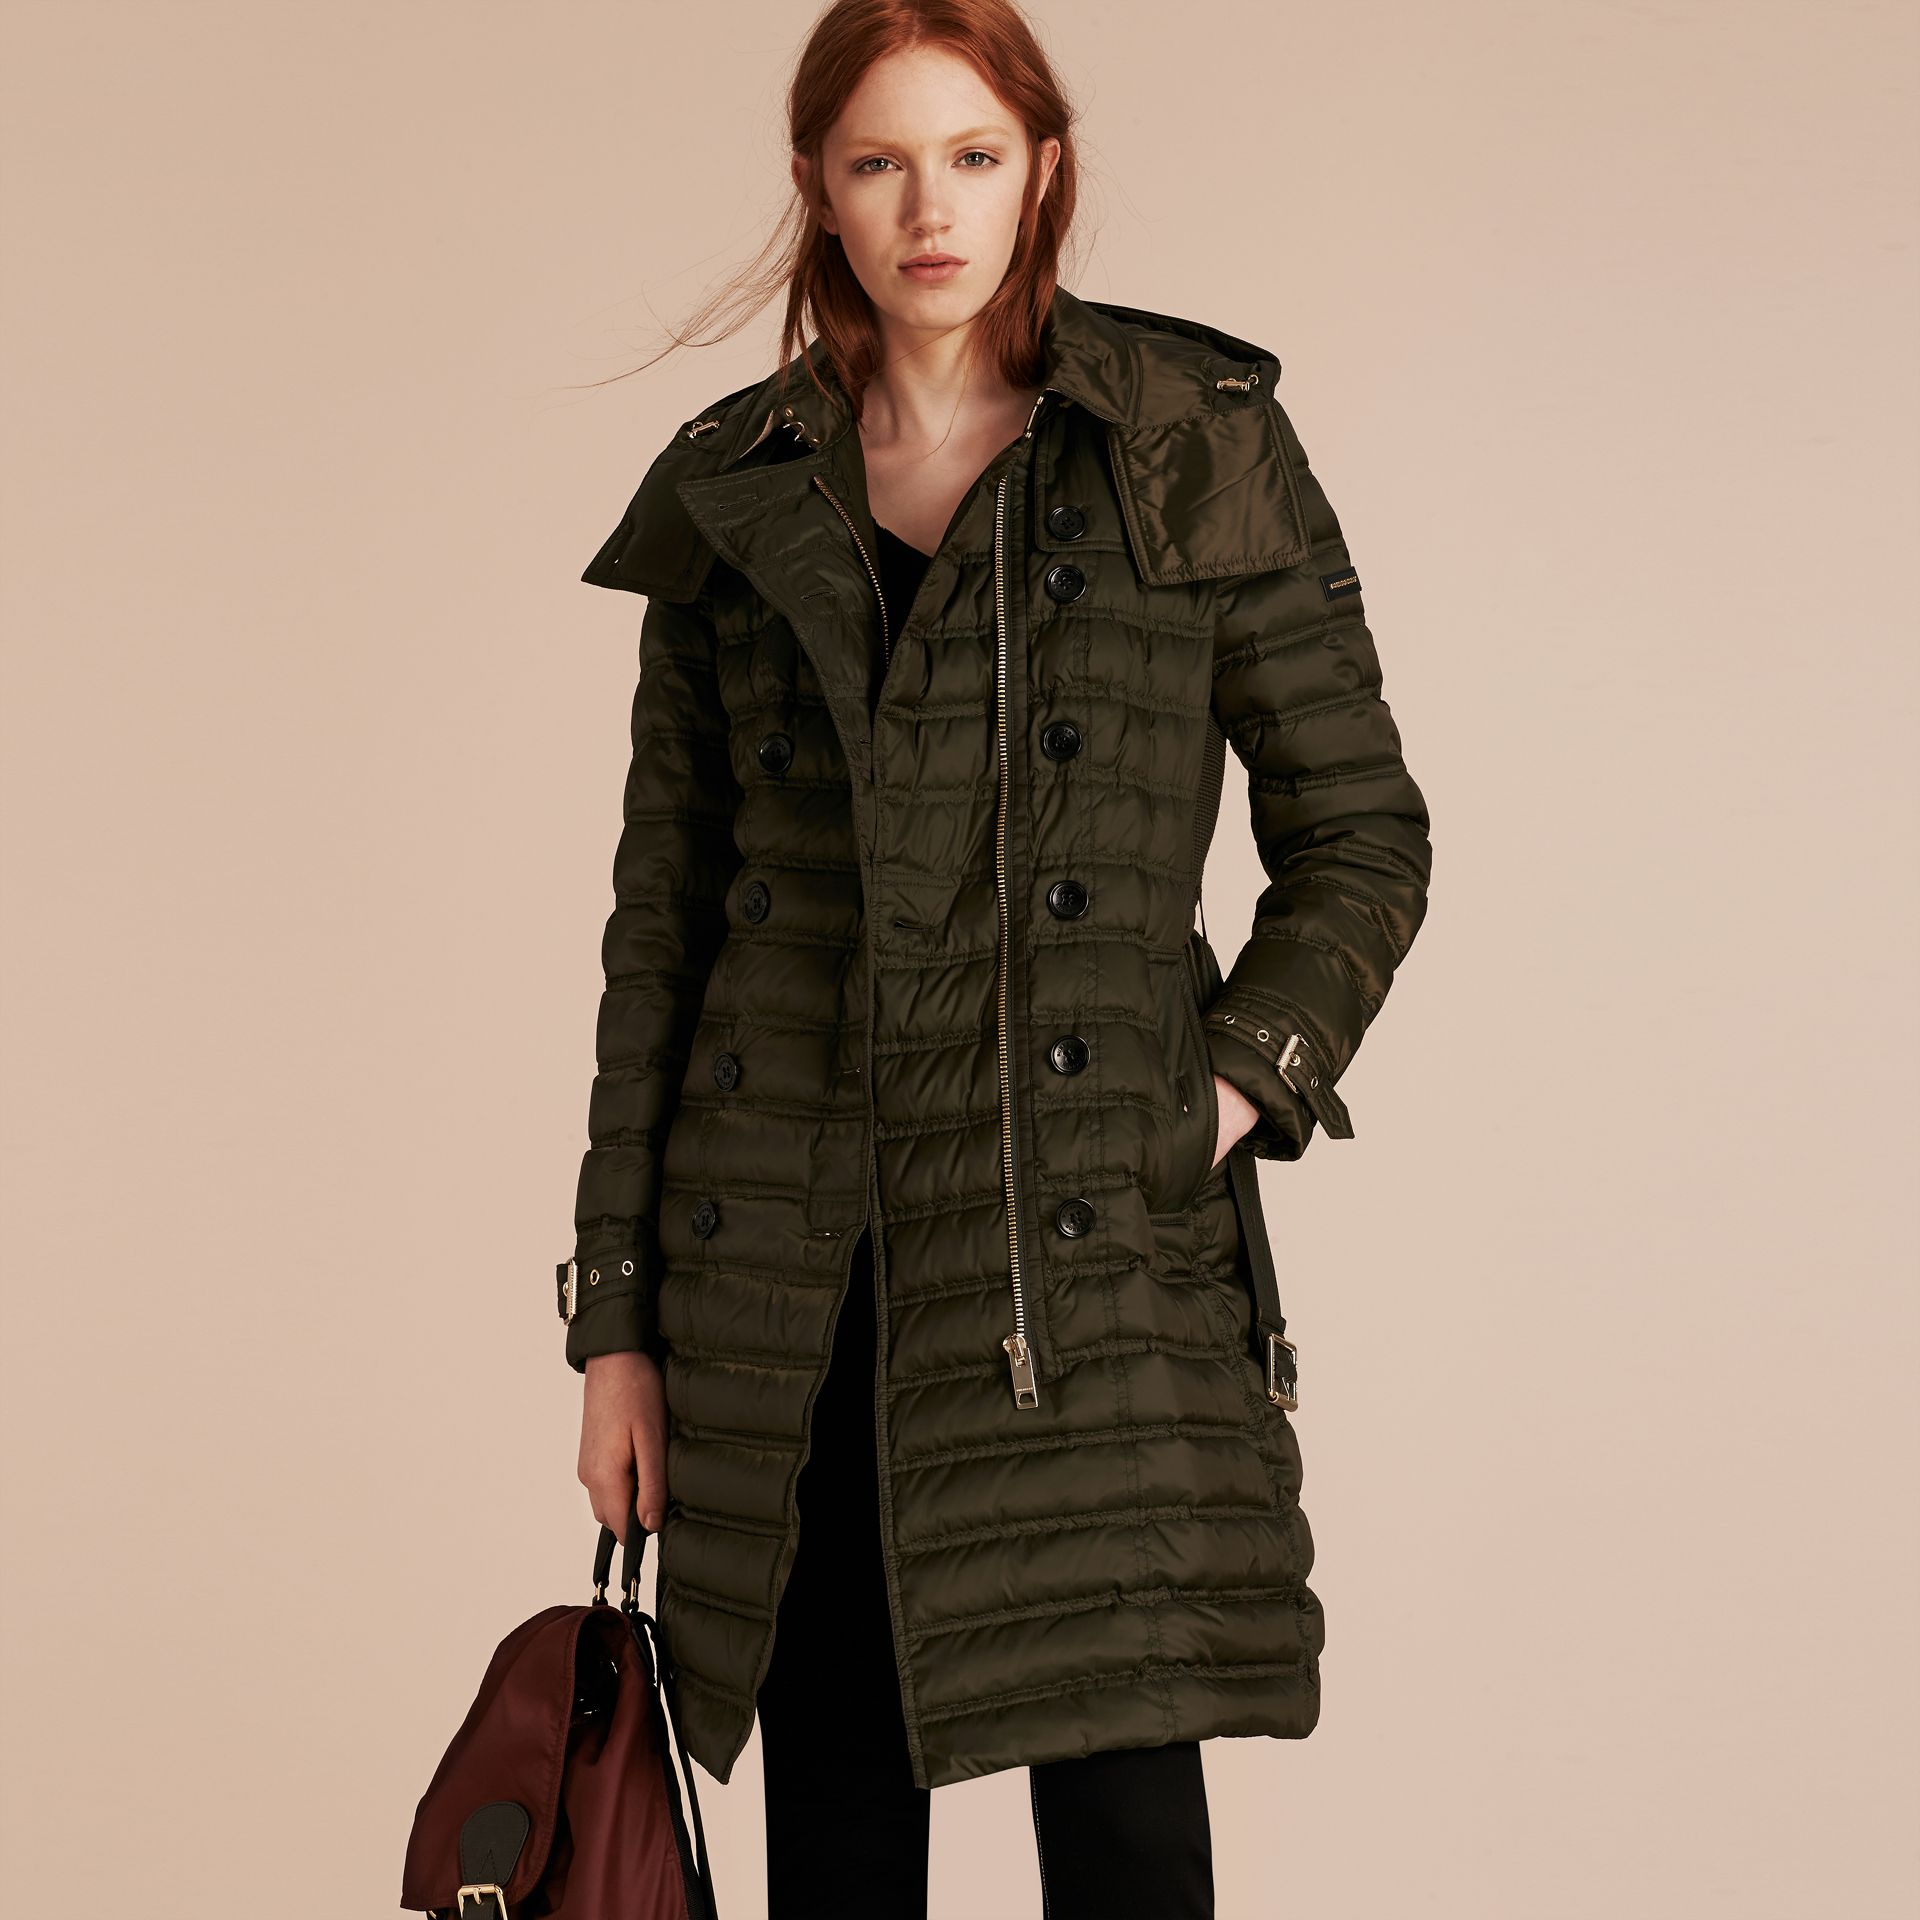 Down-filled Puffer Coat with Detachable Hood in Dark Olive - gallery image 7